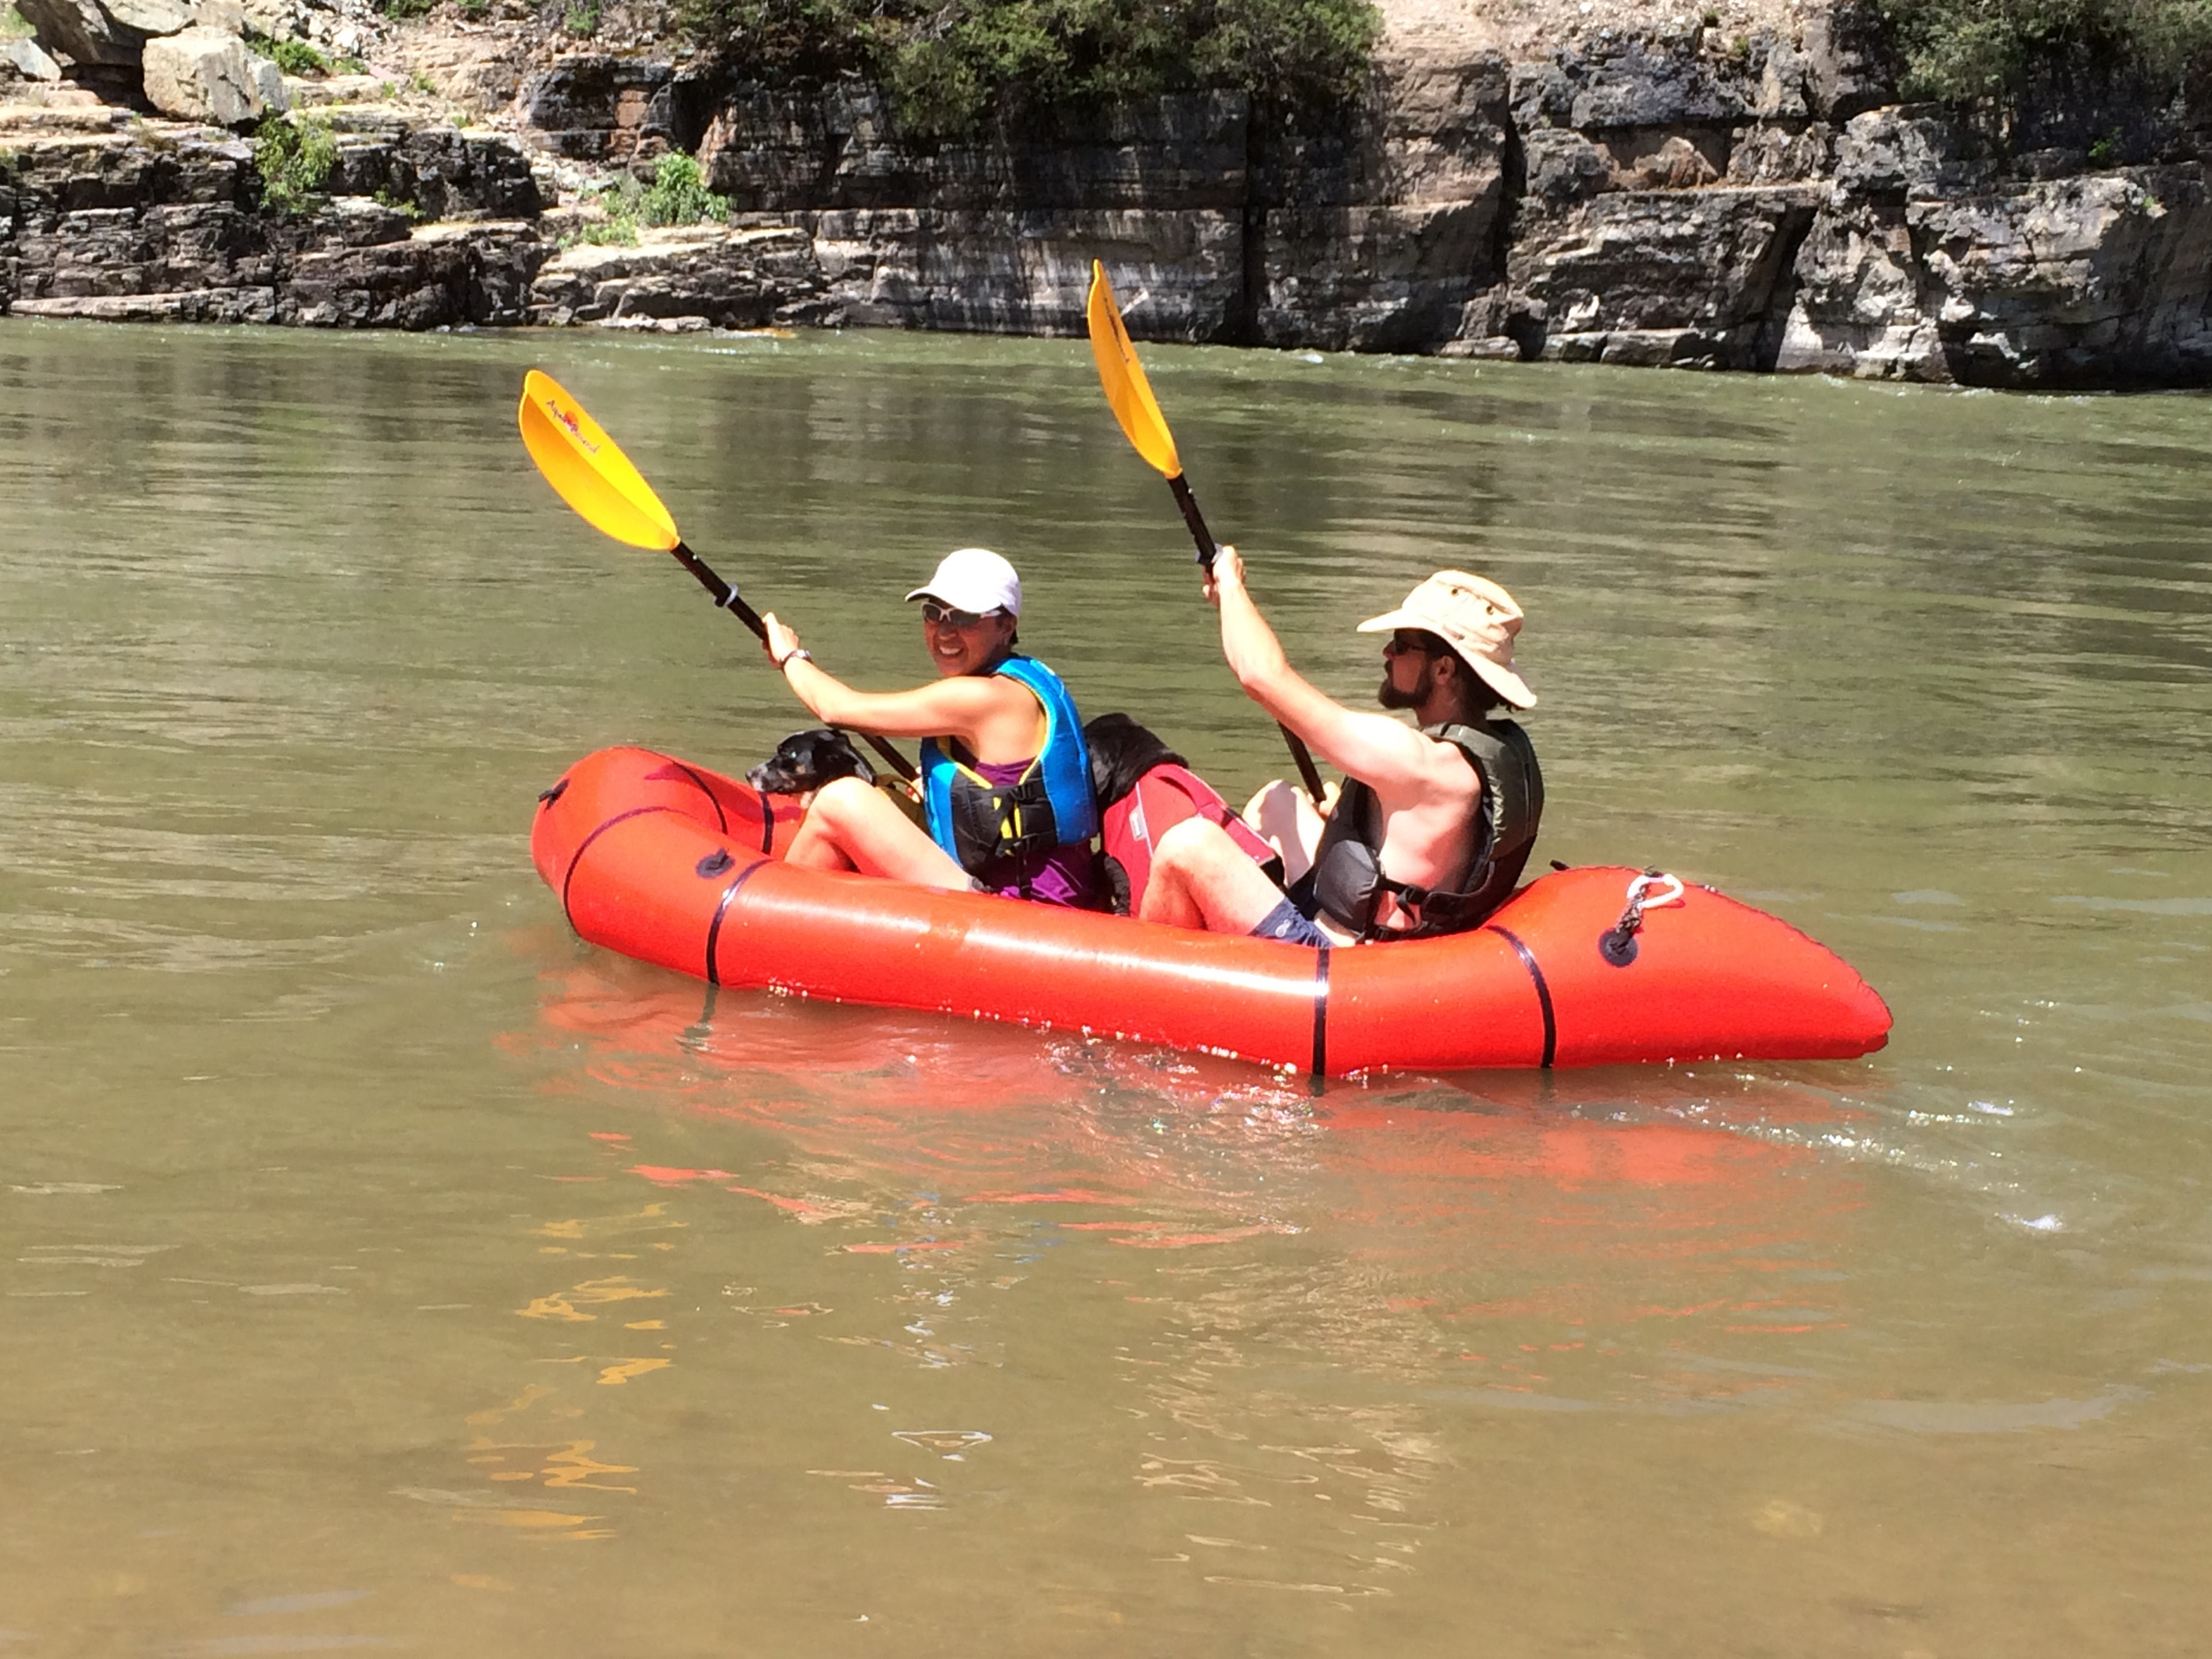 The four of us really do fit in the Alapacka Raft. Photo by Barbara.